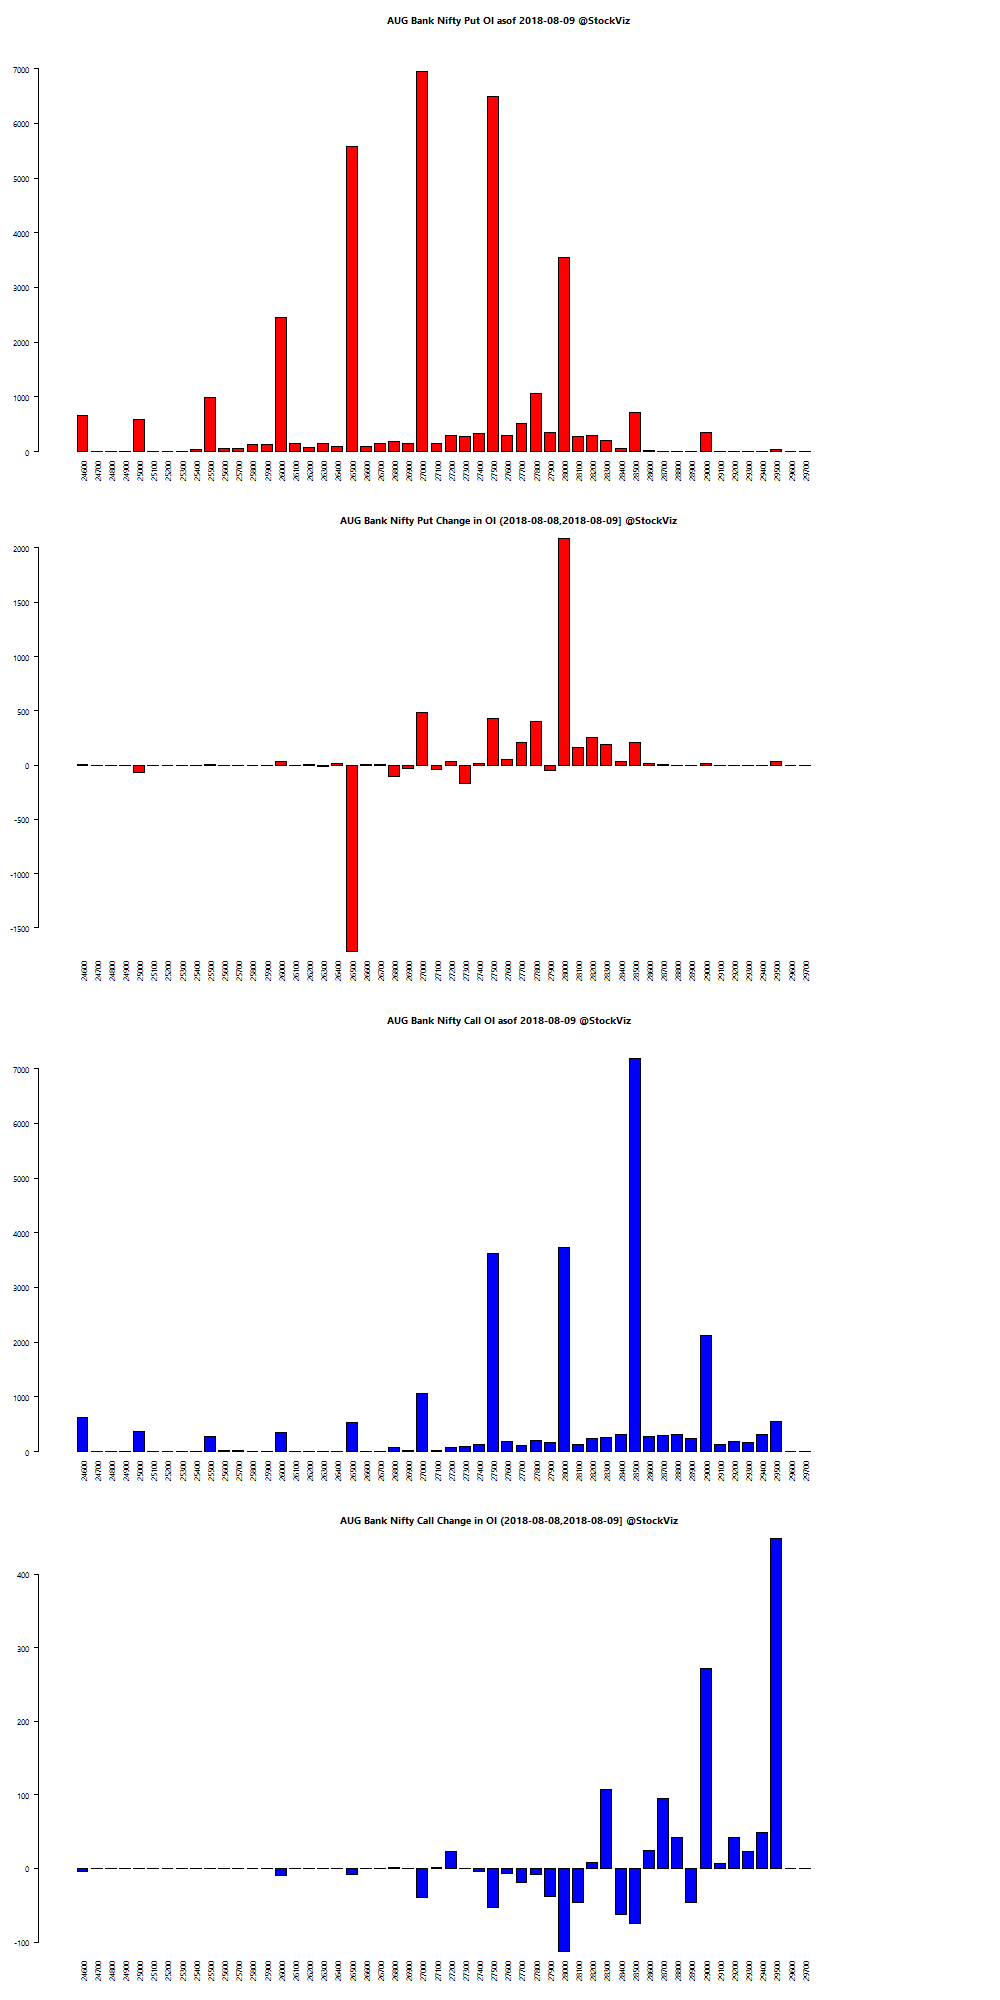 AUG BANKNIFTY OI chart